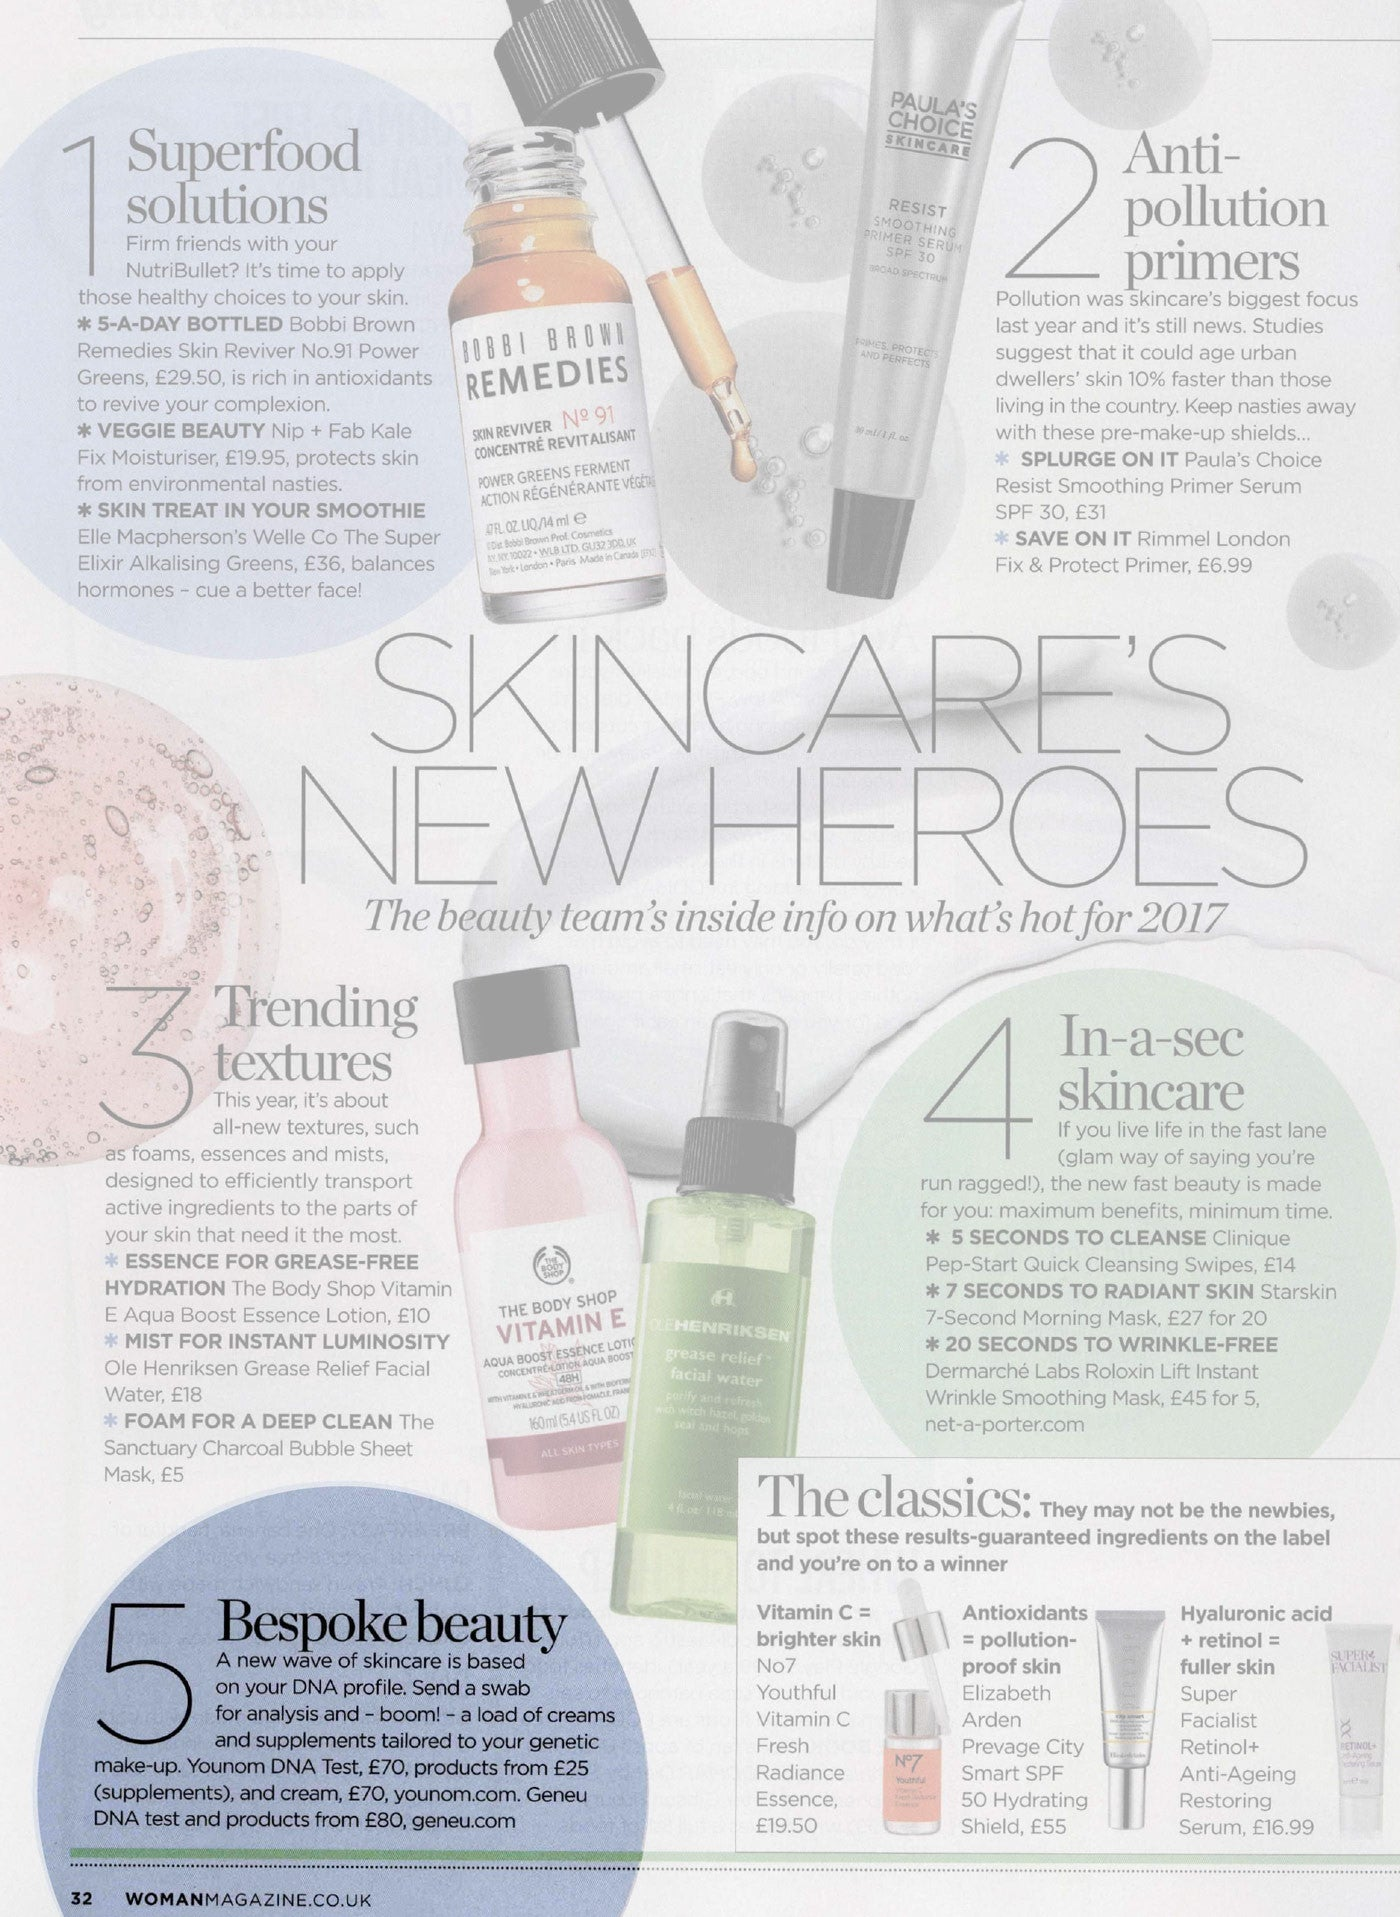 Woman Magazine – Skincare's New Heroes